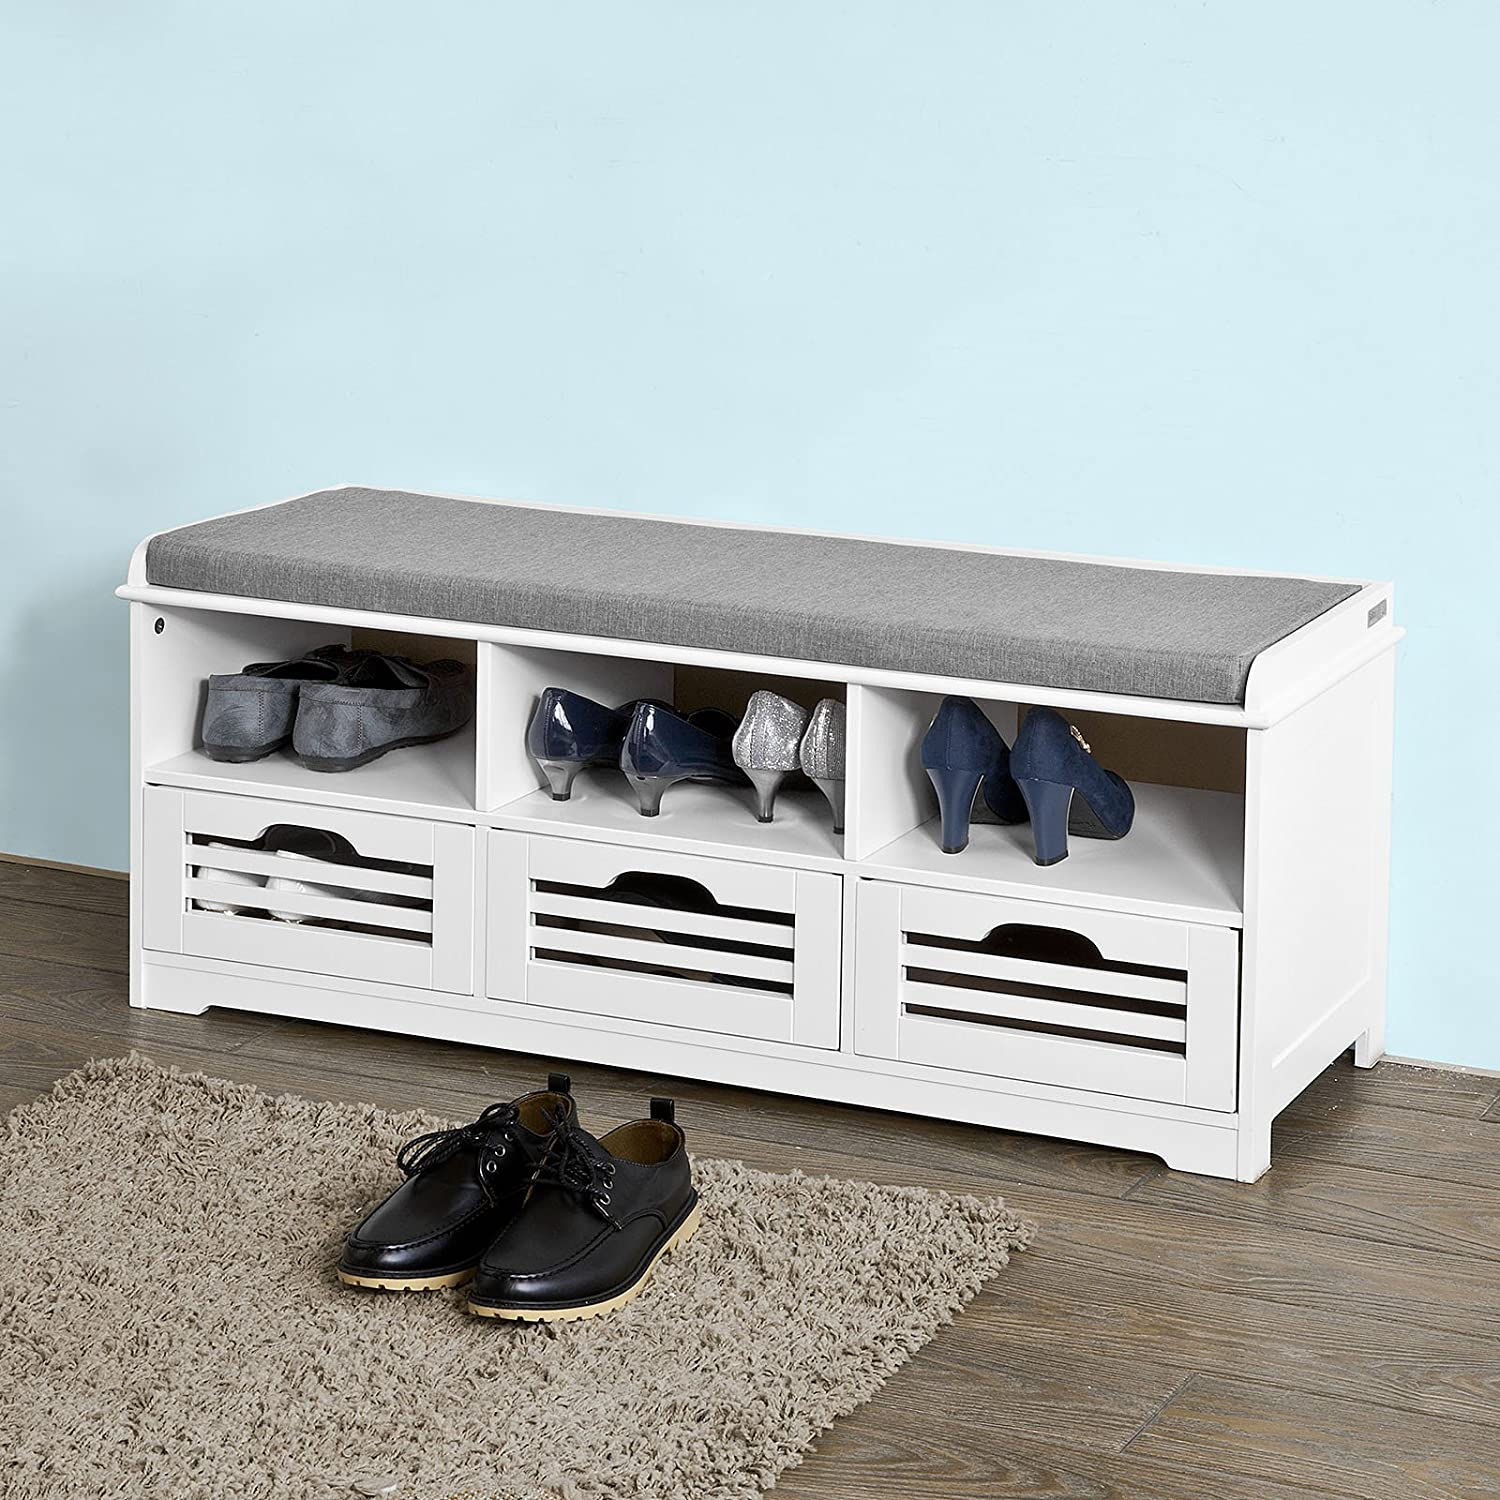 ana emmie projects diy plans cube white free storage bench